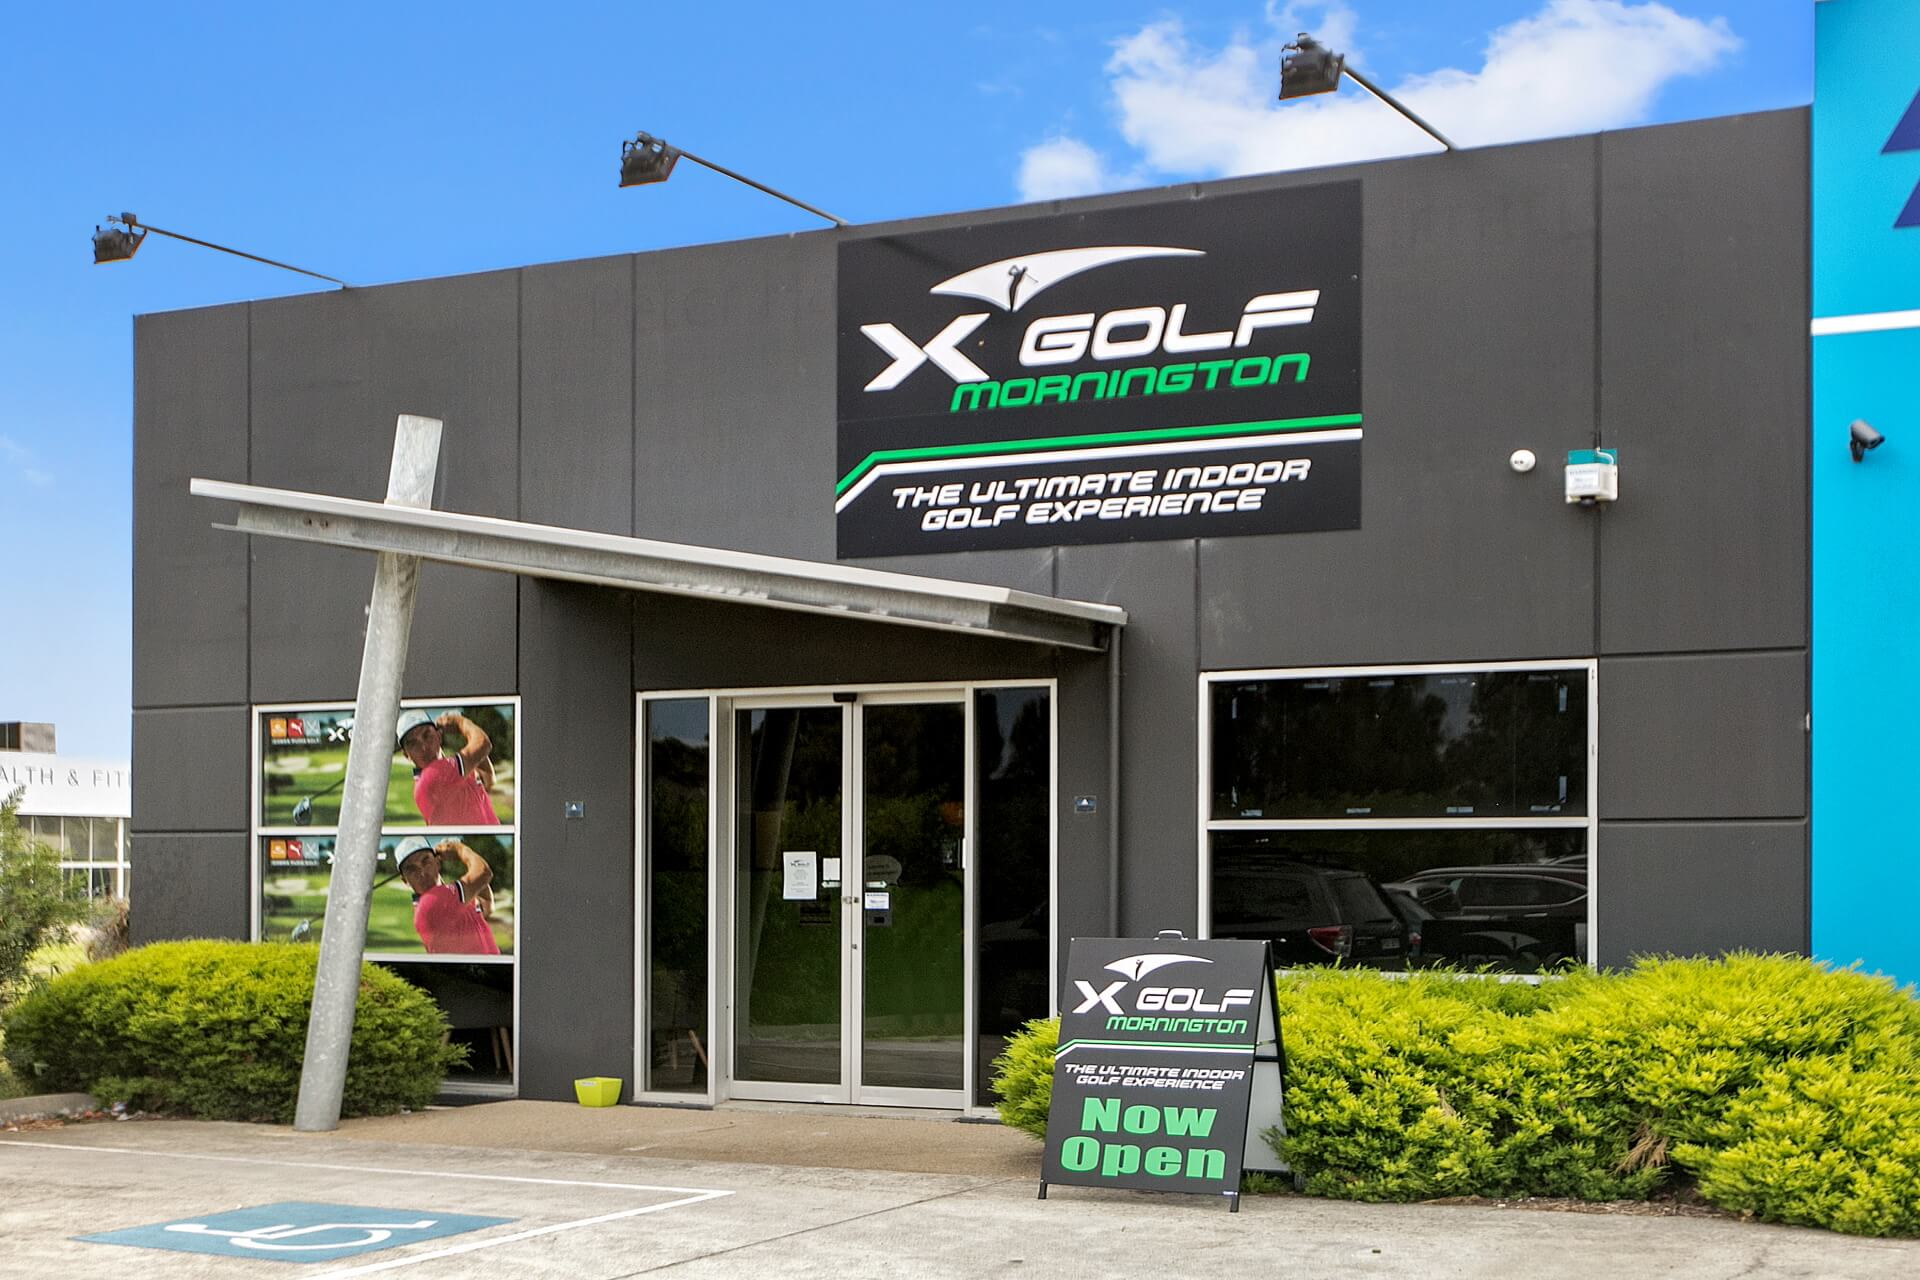 X-Golf Mornington Entrance